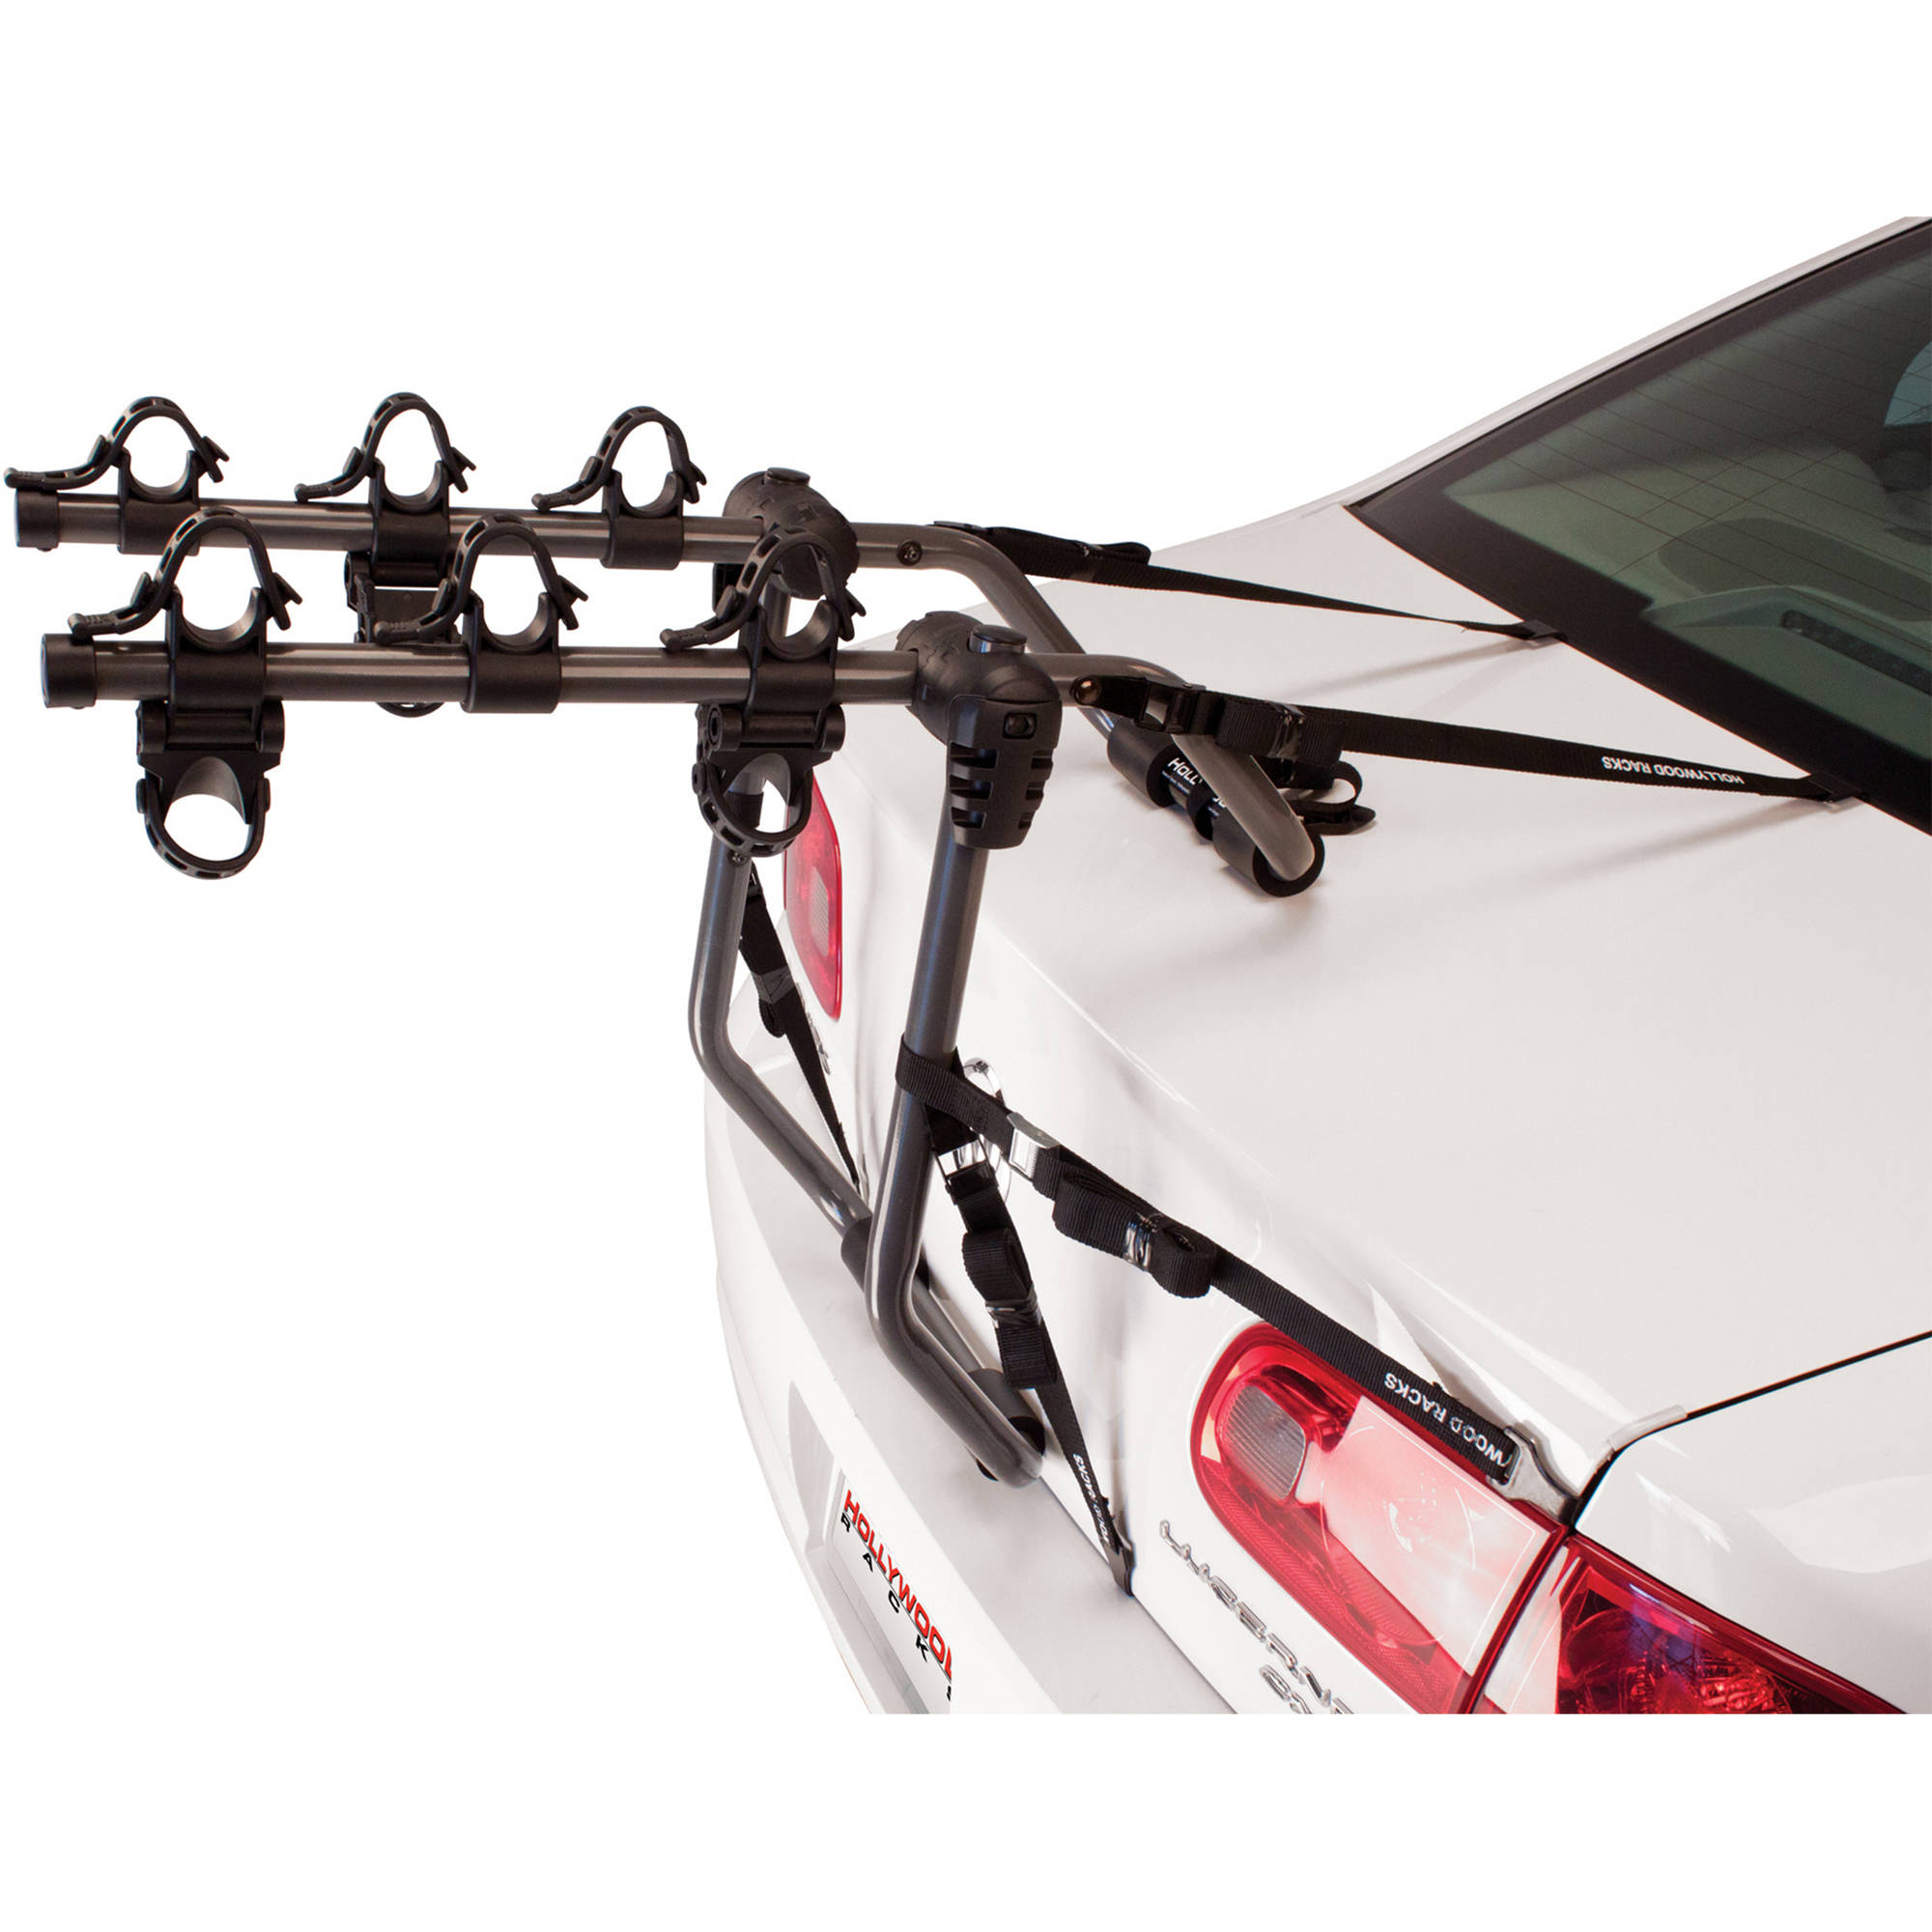 Hollywood Racks Express 3-Bike Rack